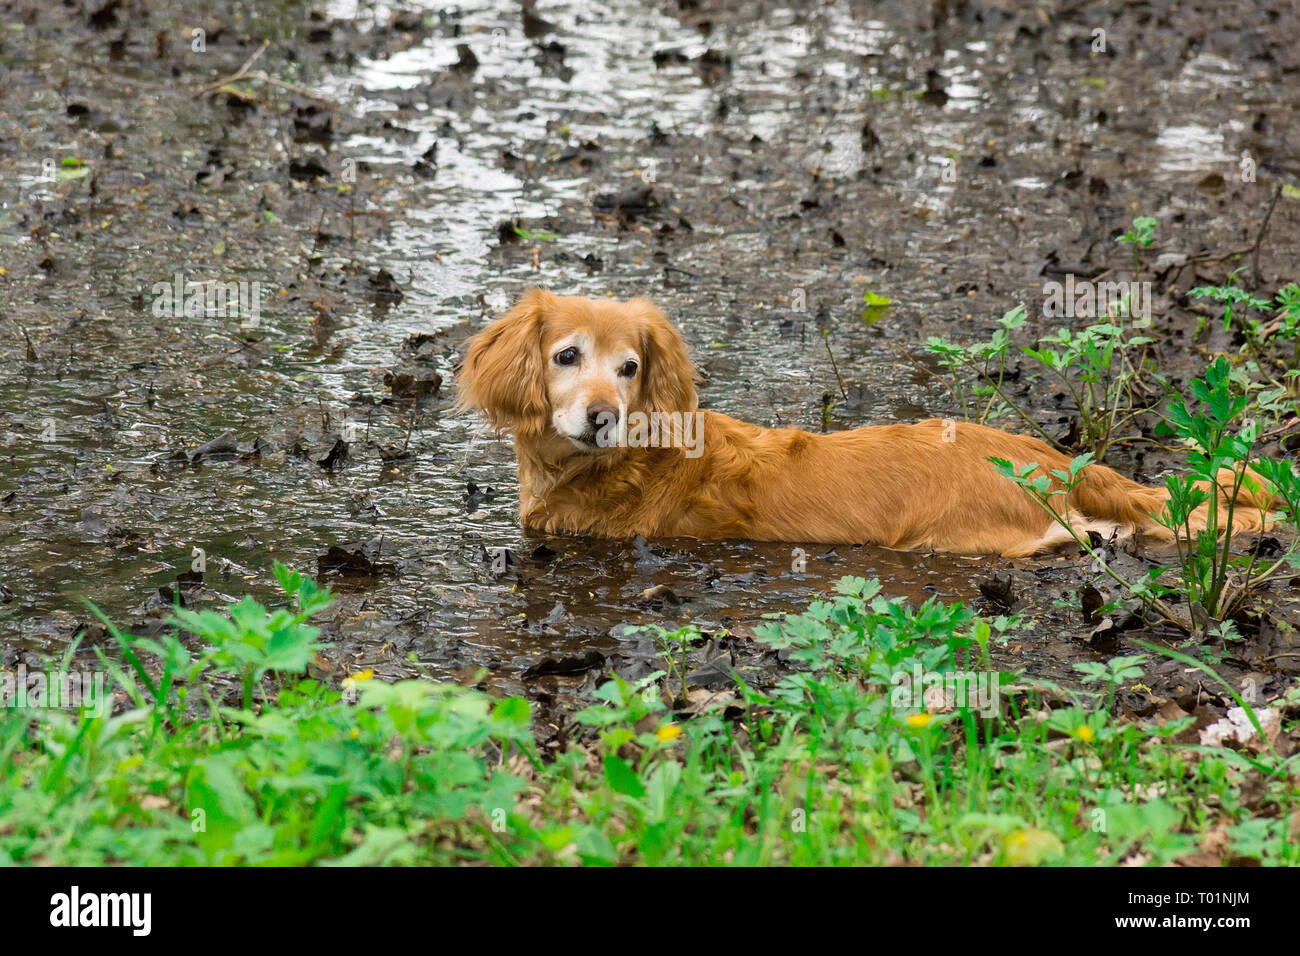 Little dog lying on the grass in the park, nature, autumn - Stock Image